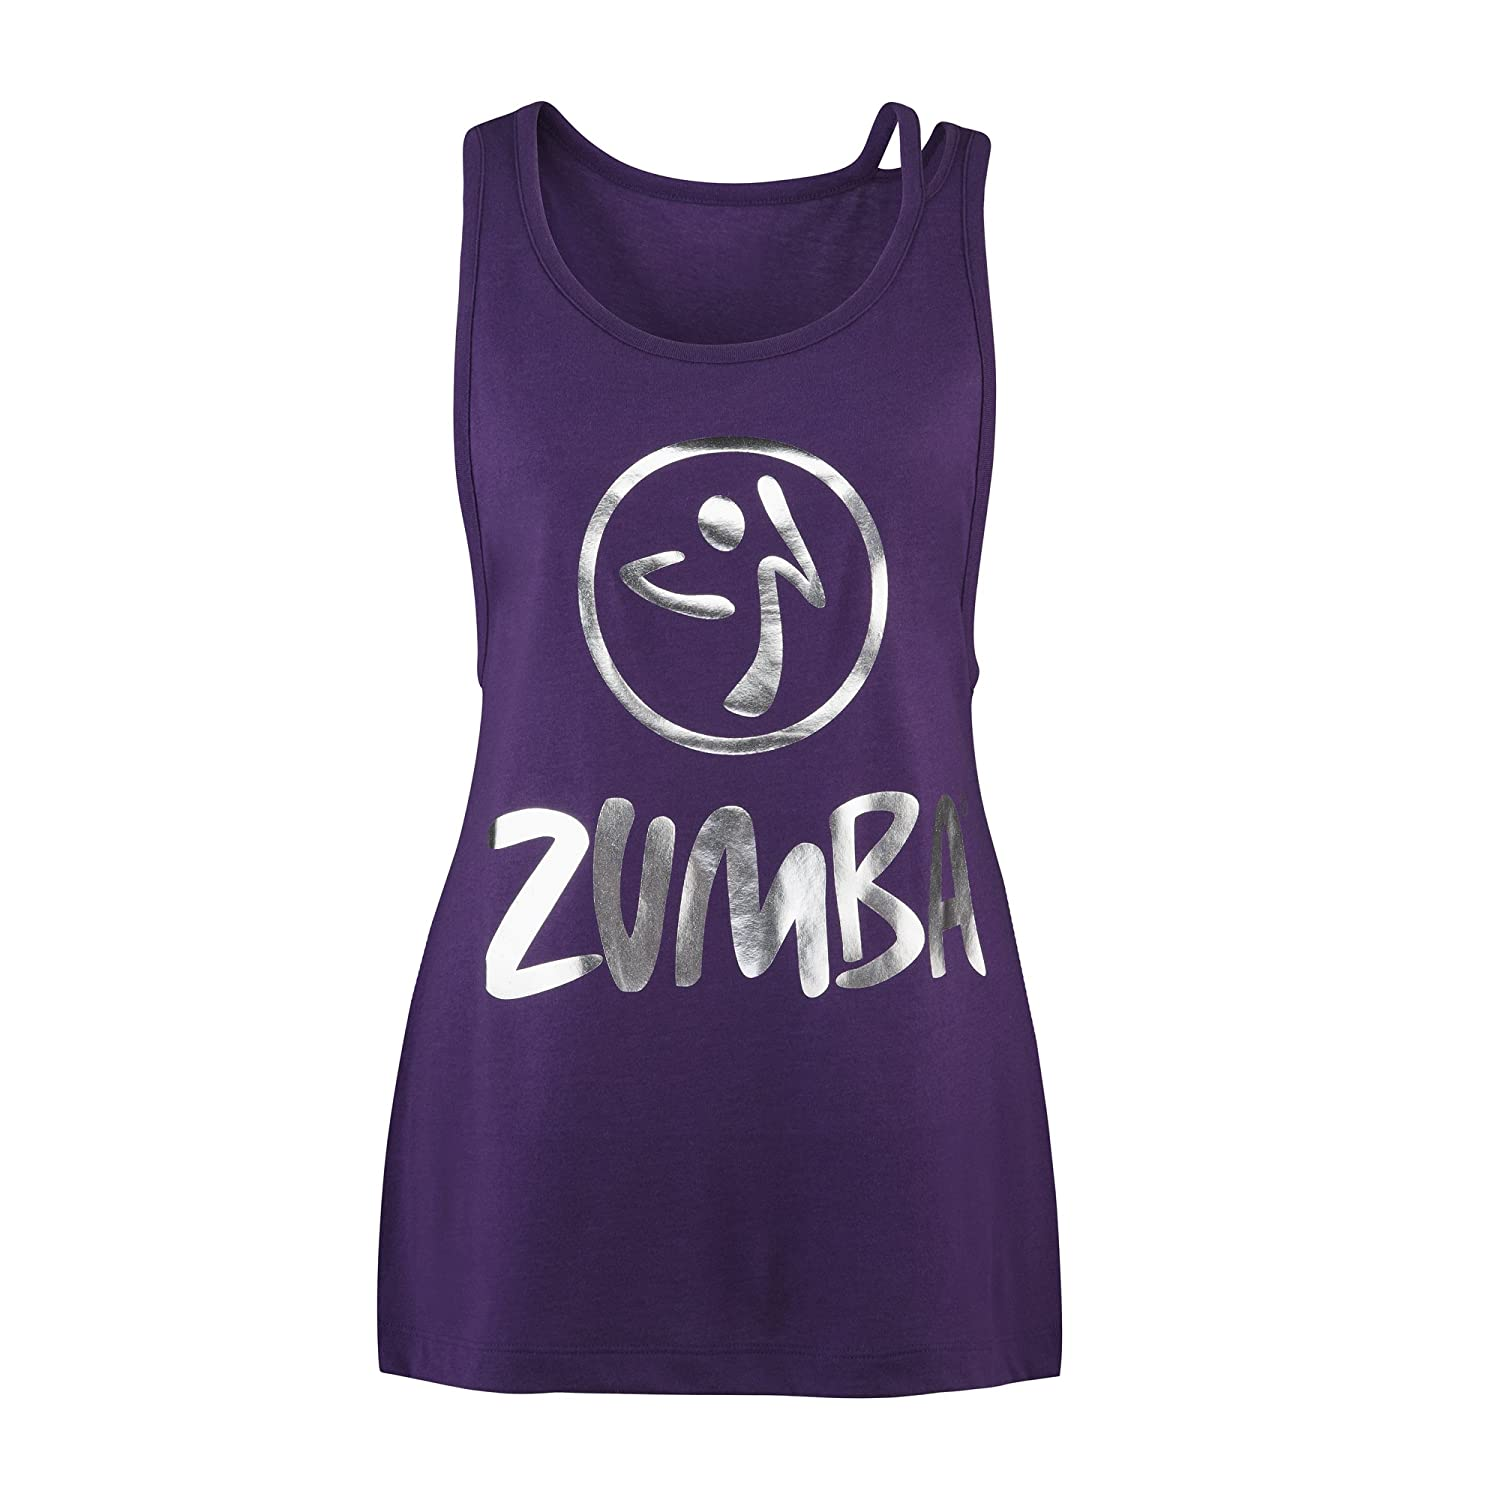 Zumba Love Me or Loose Me Top